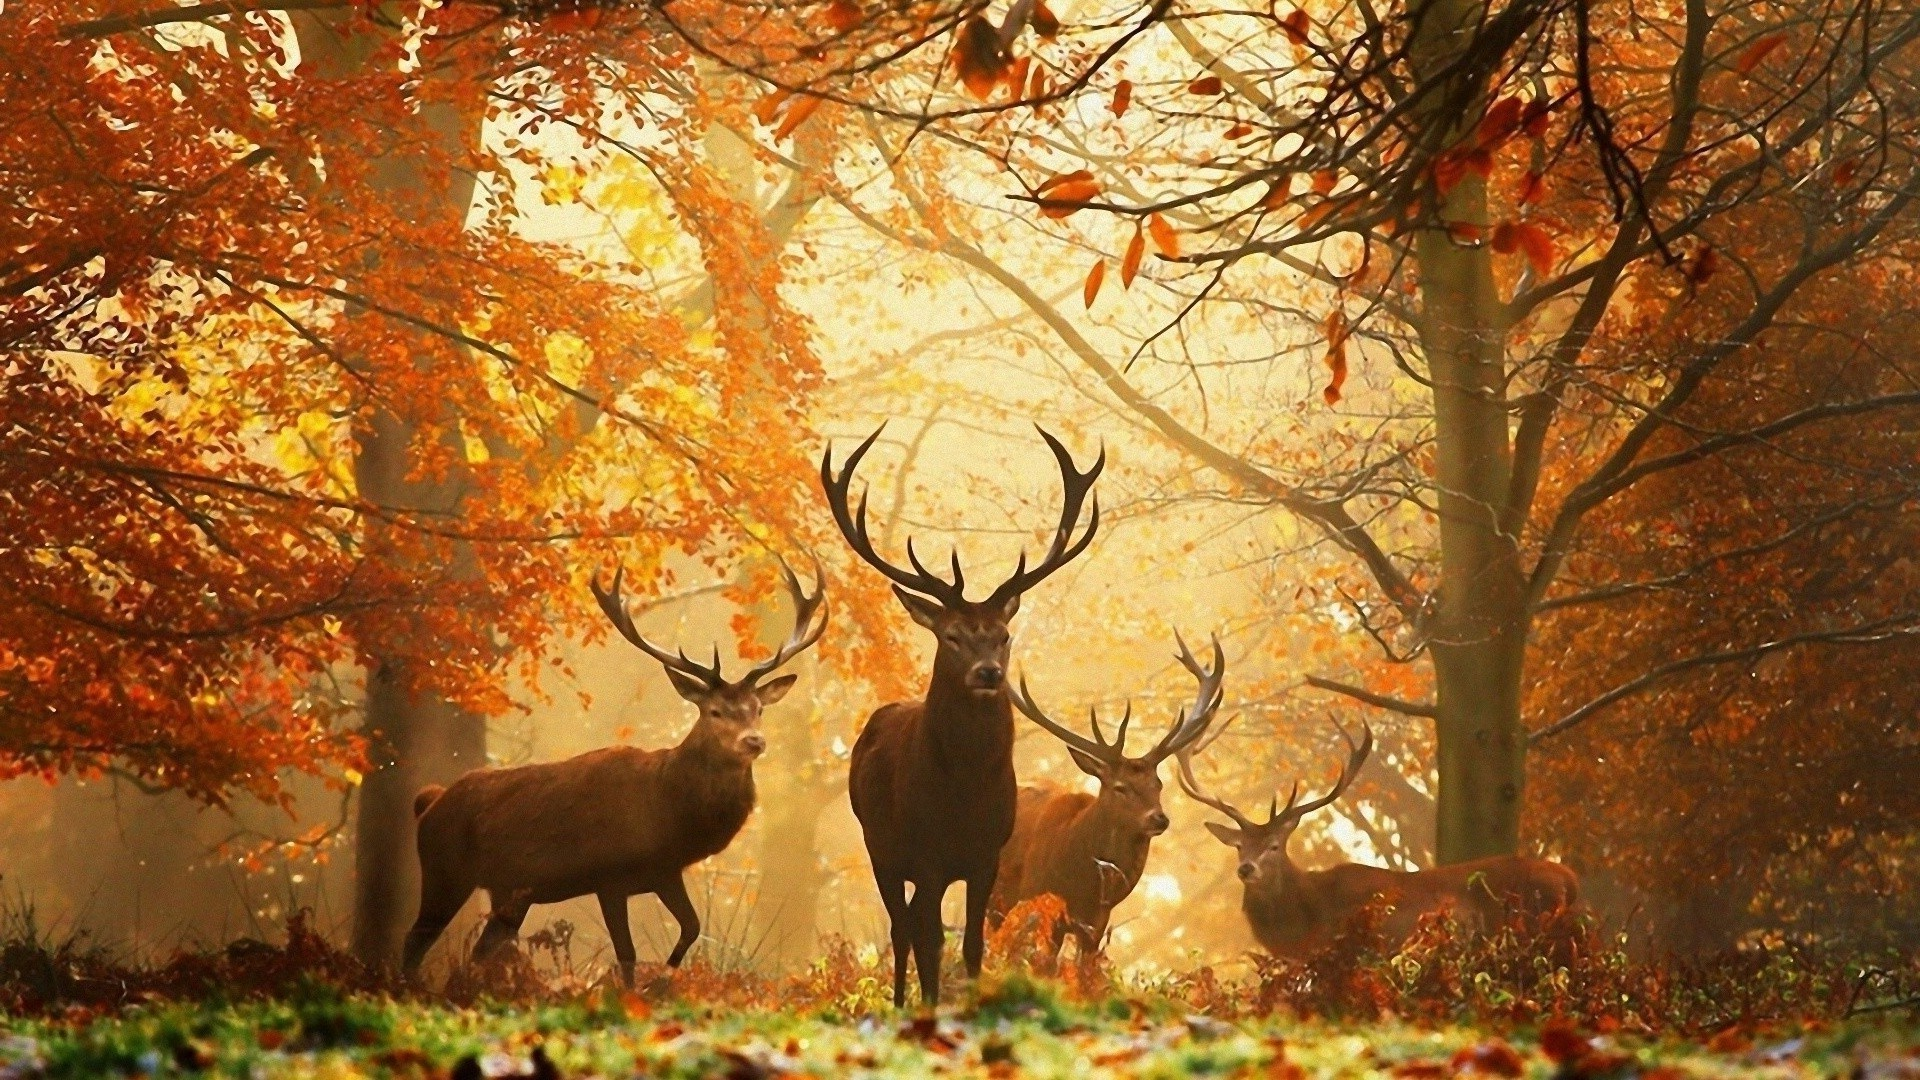 A flock of deer comes out of the autumn forest